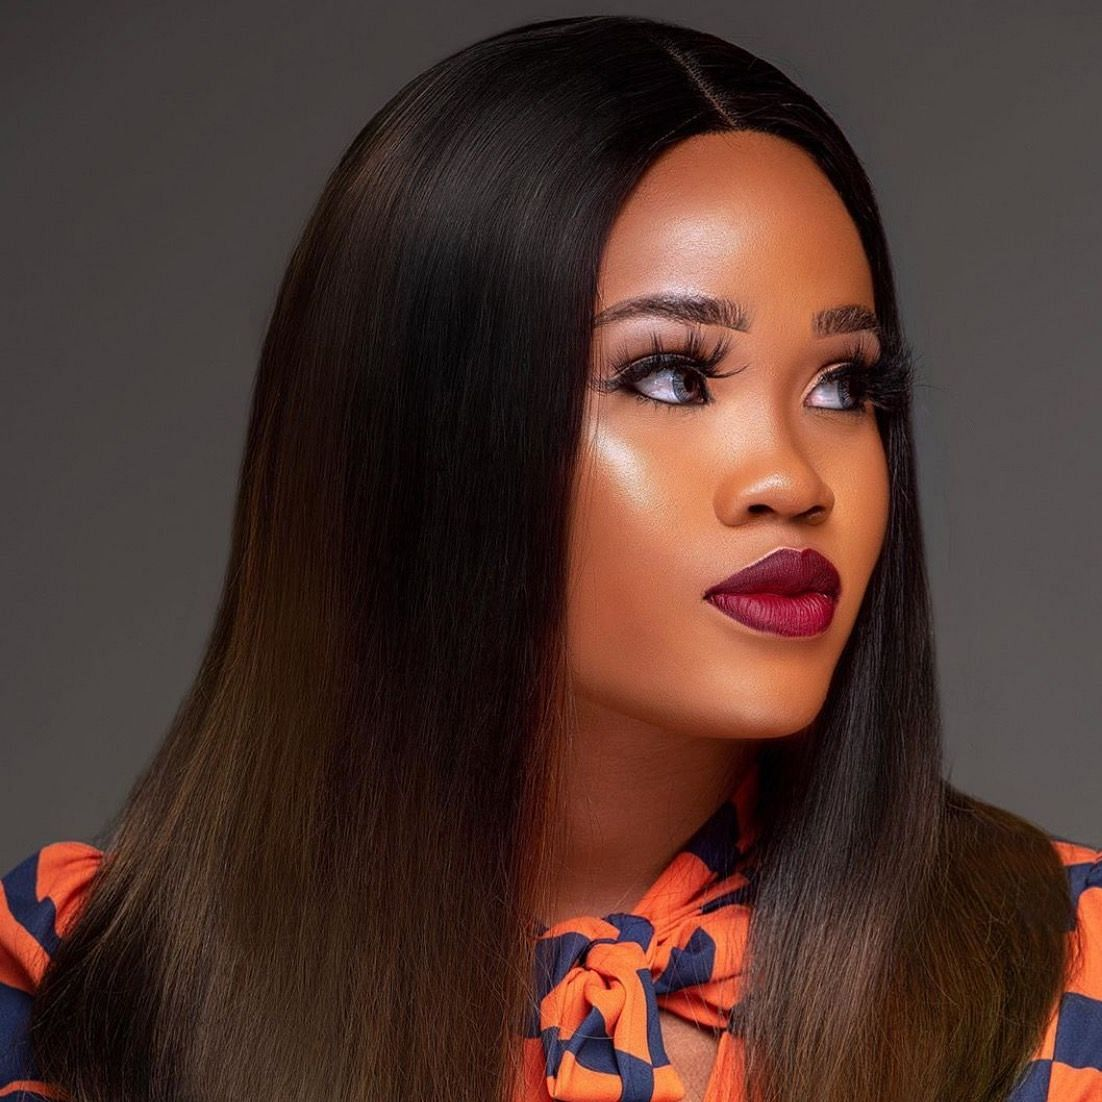 Nigerian Hair Giant Royal Hairs Unveils Former Big Brother Naija Housemate Cee-C as Brand Ambassador